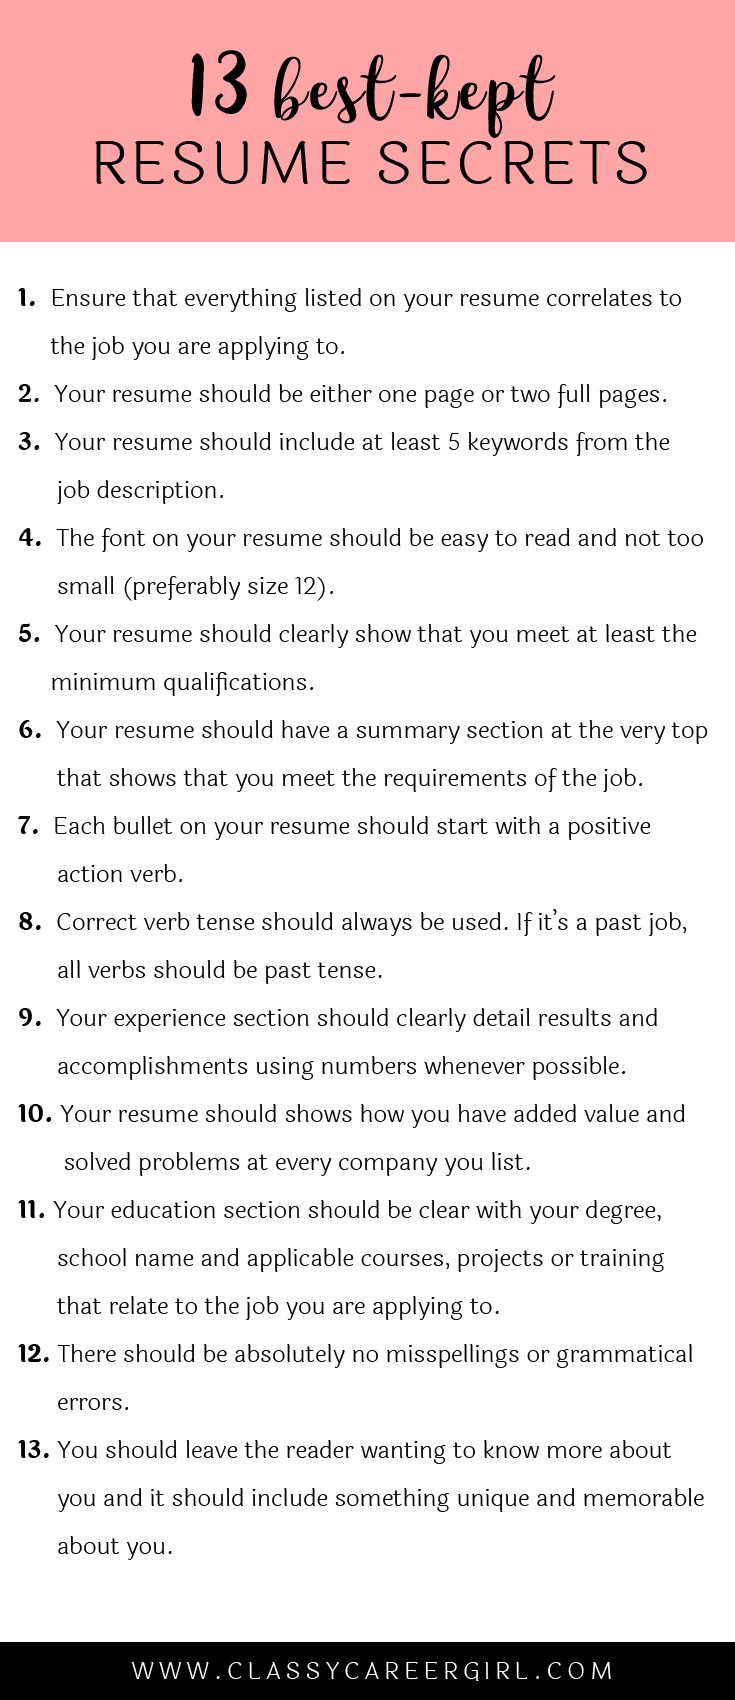 Opposenewapstandardsus  Prepossessing  Ideas About Resume On Pinterest  Cv Format Resume Cv And  With Fascinating Some Hiring Managers Will Toss Your Resume Out If You Dont Know These  With Attractive Waitress Job Description Resume Also Office Manager Job Description For Resume In Addition Resume Template For Google Docs And Cover Letter With Resume As Well As Study Abroad Resume Additionally Objective Of Resume From Pinterestcom With Opposenewapstandardsus  Fascinating  Ideas About Resume On Pinterest  Cv Format Resume Cv And  With Attractive Some Hiring Managers Will Toss Your Resume Out If You Dont Know These  And Prepossessing Waitress Job Description Resume Also Office Manager Job Description For Resume In Addition Resume Template For Google Docs From Pinterestcom